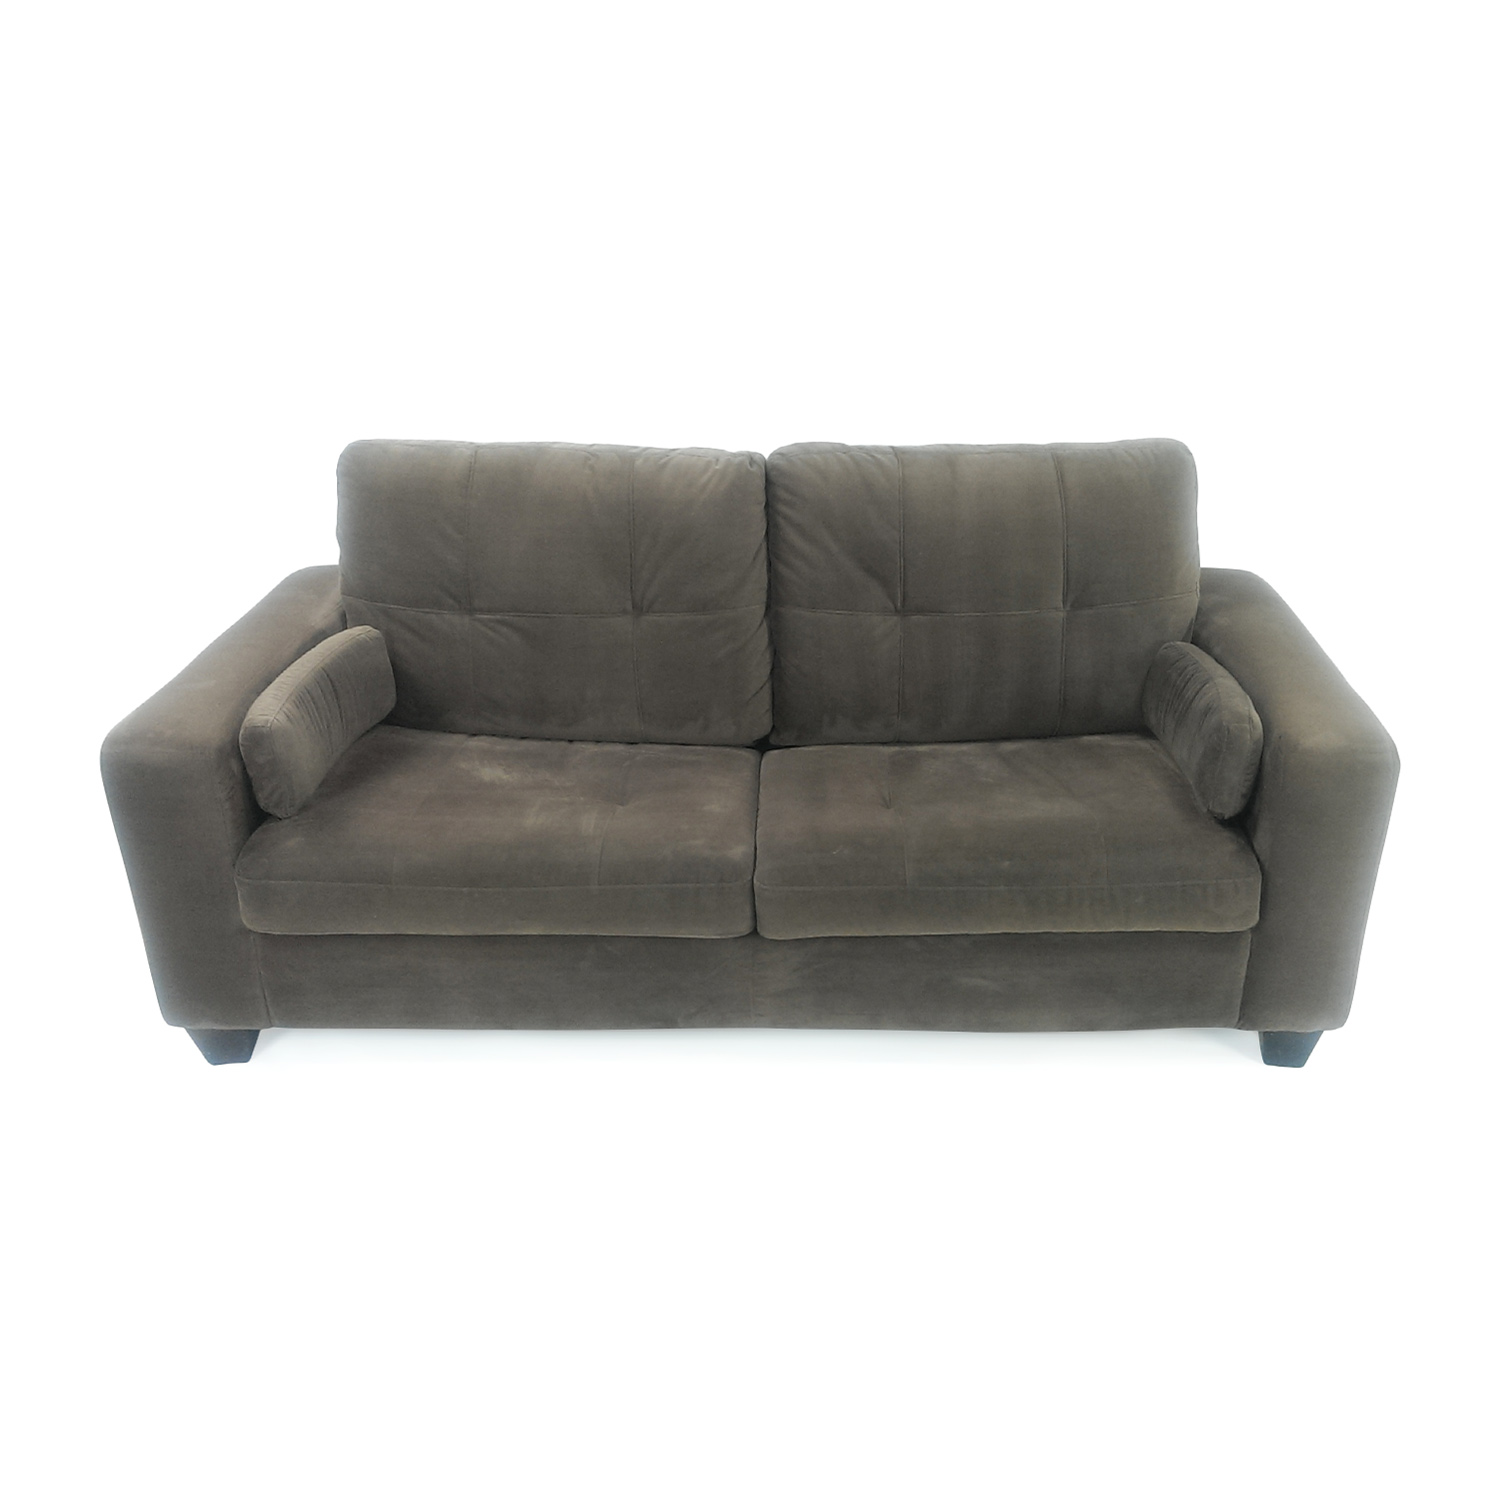 Jennifer Convertibles Microsuede Pull Out Sofa / Sofas